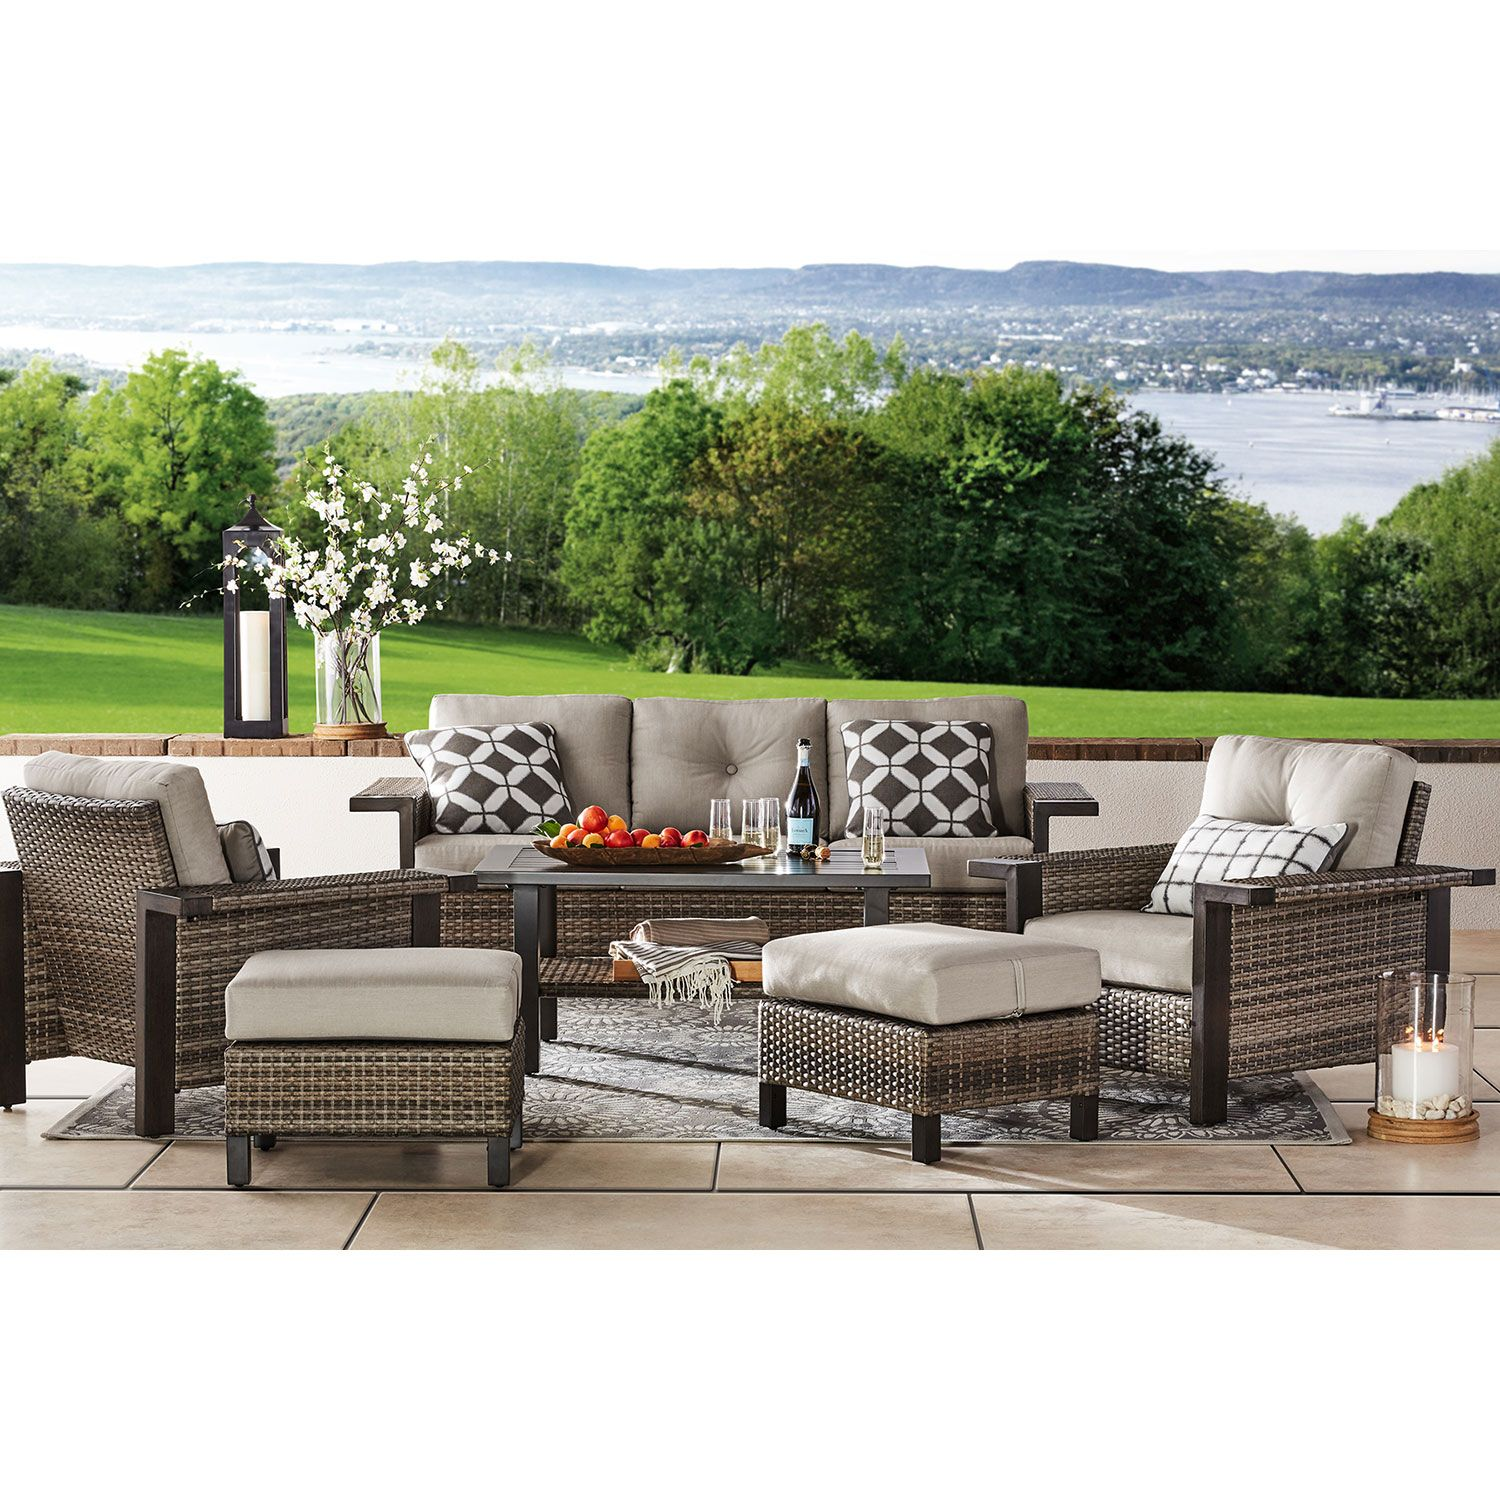 Member's Mark Agio Collection Manchester 6 Piece Patio Seating Set